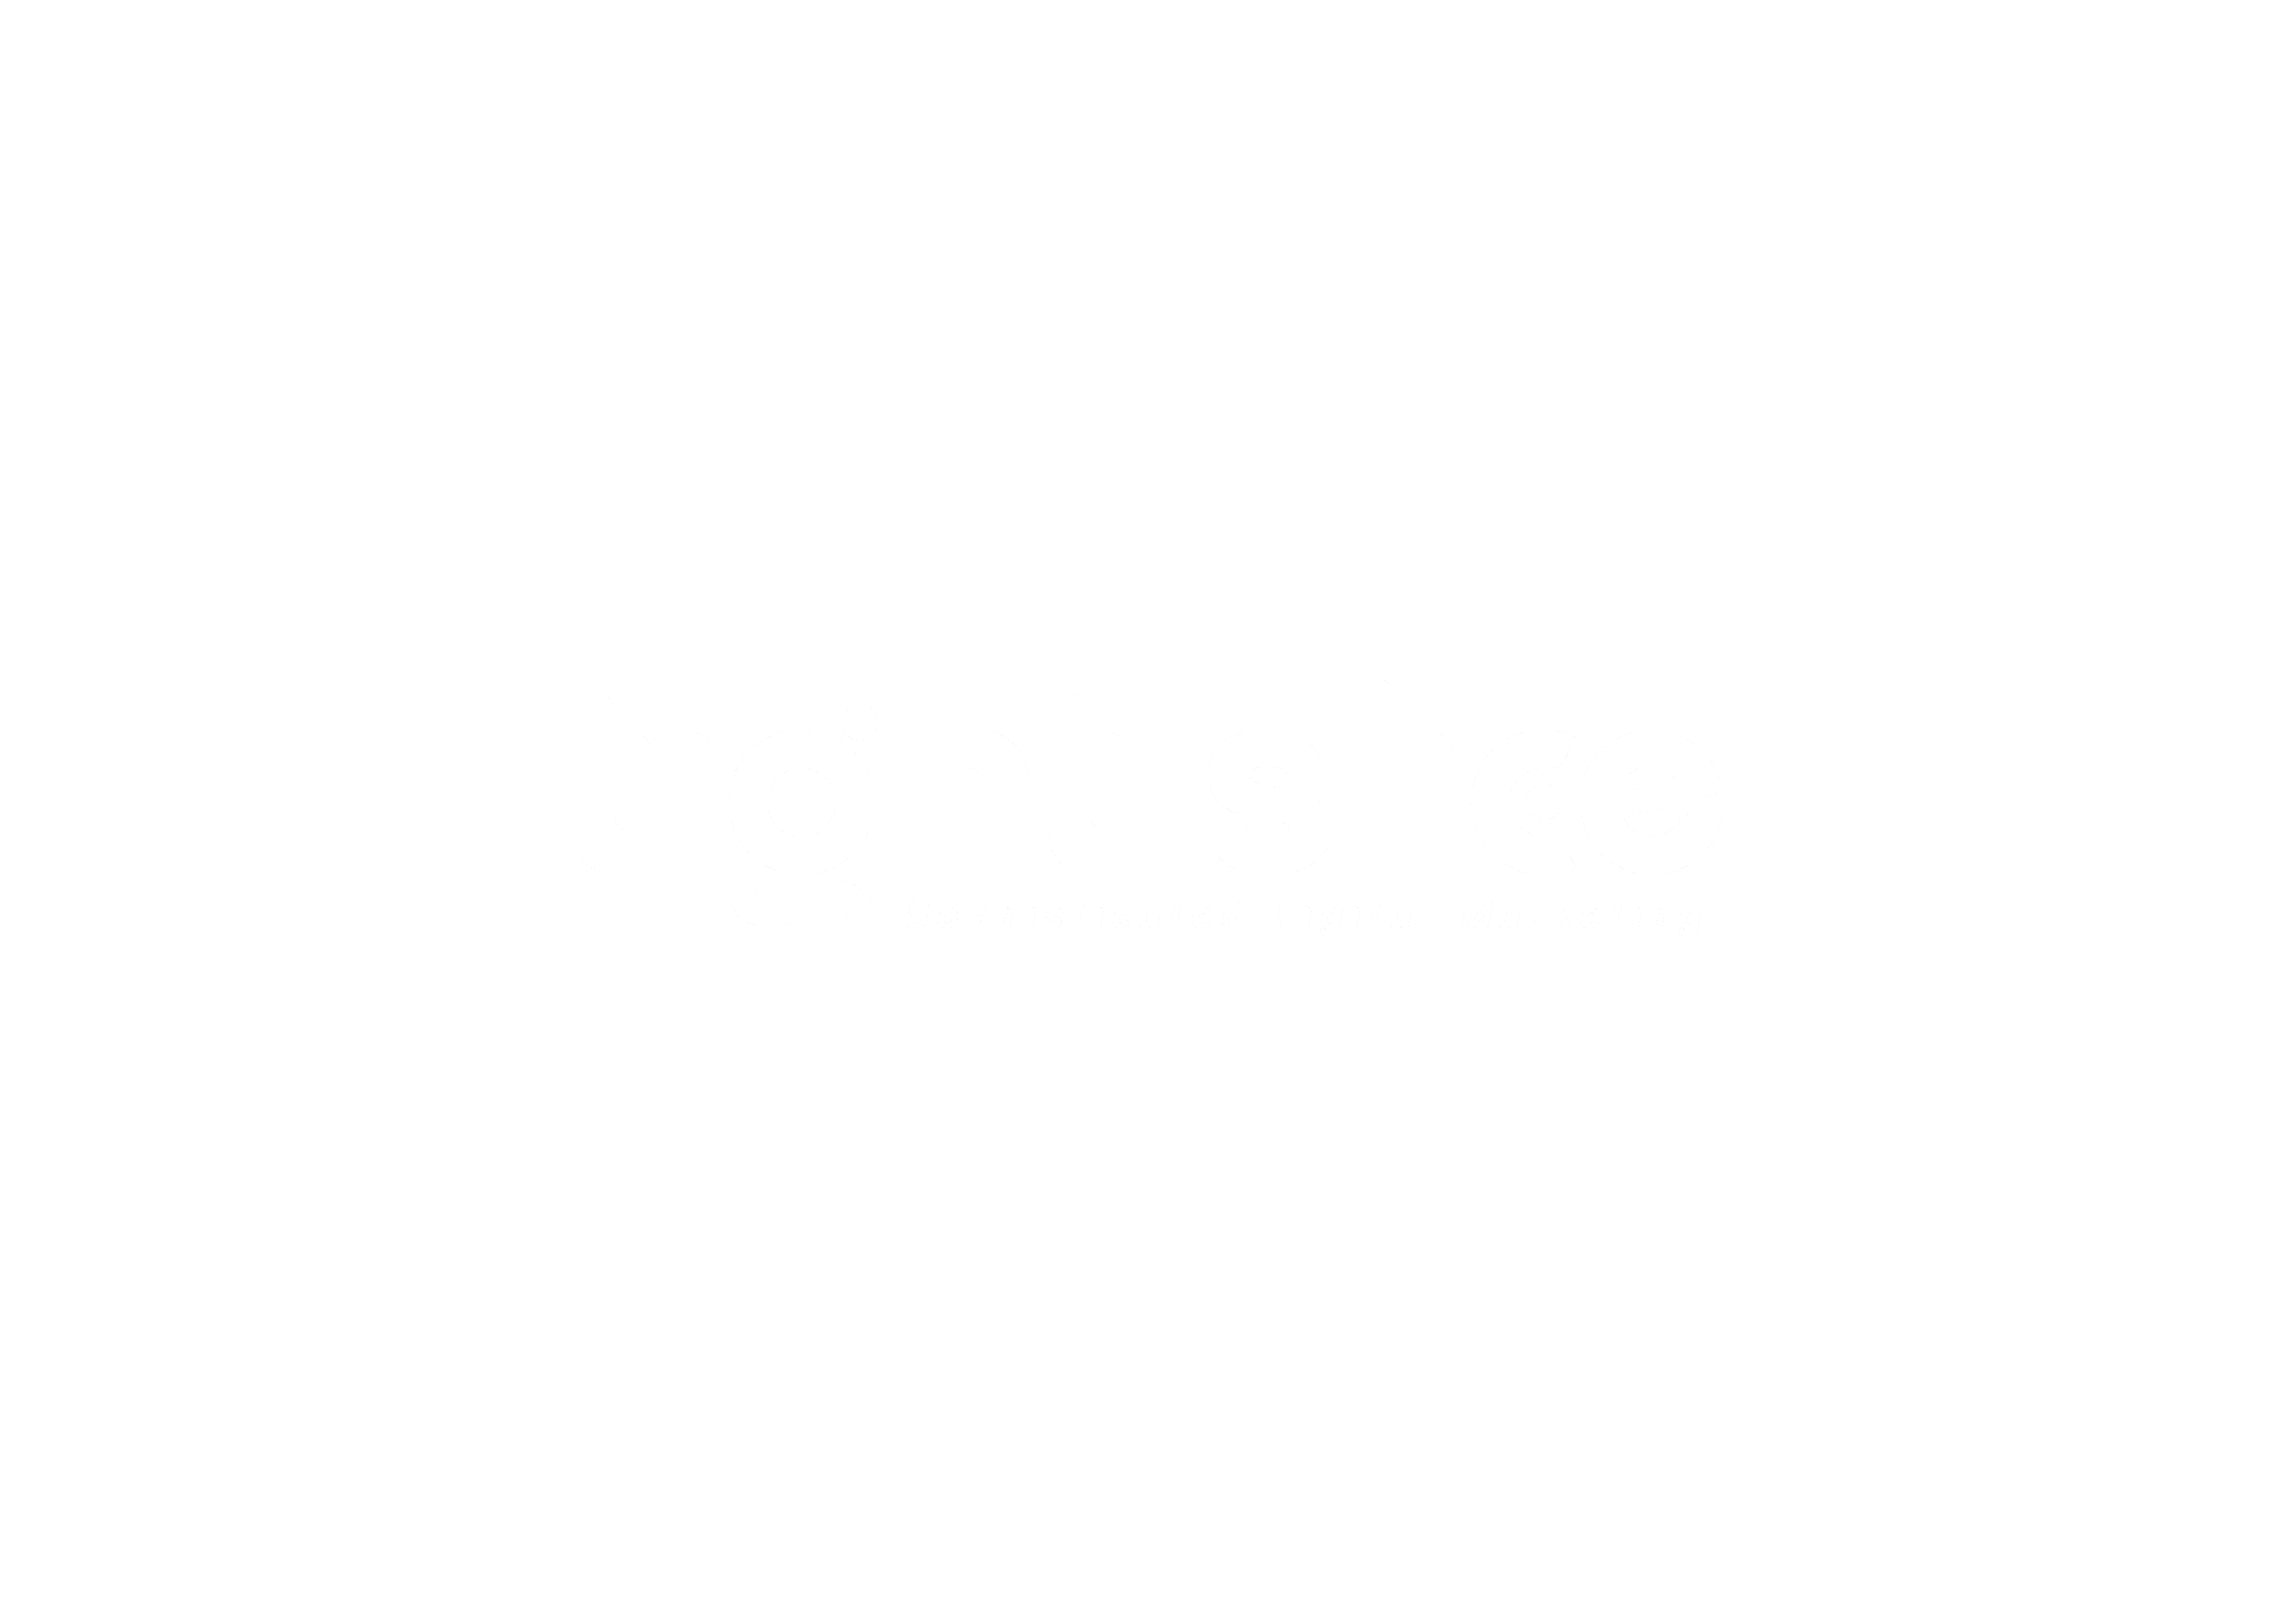 tight slice digital marketing